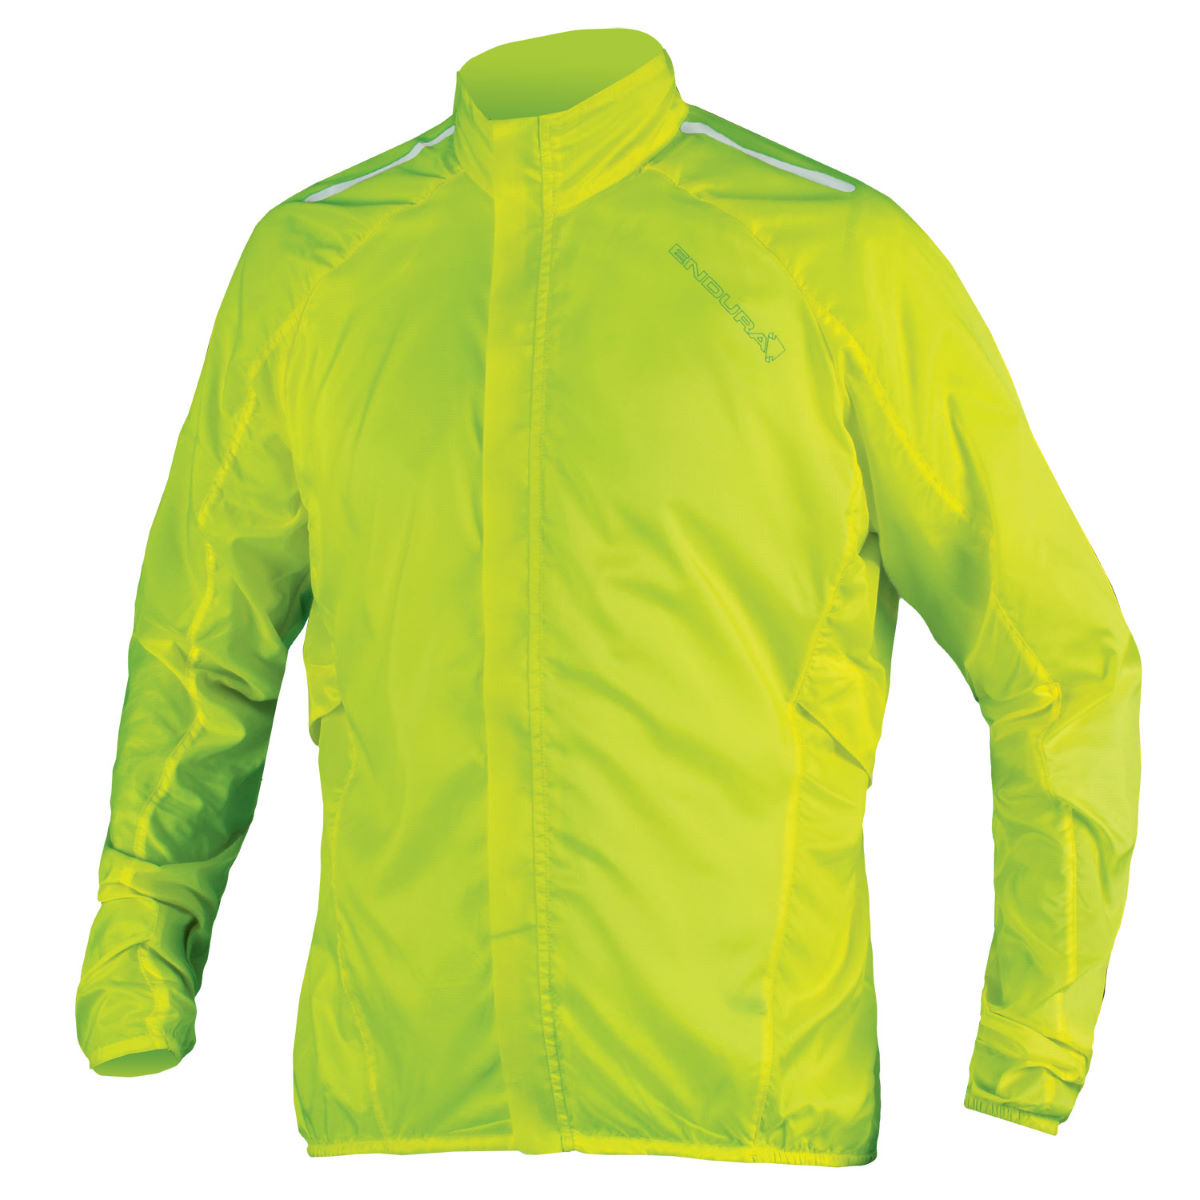 Endura Pakajak Showerproof Jacket - Small Yellow